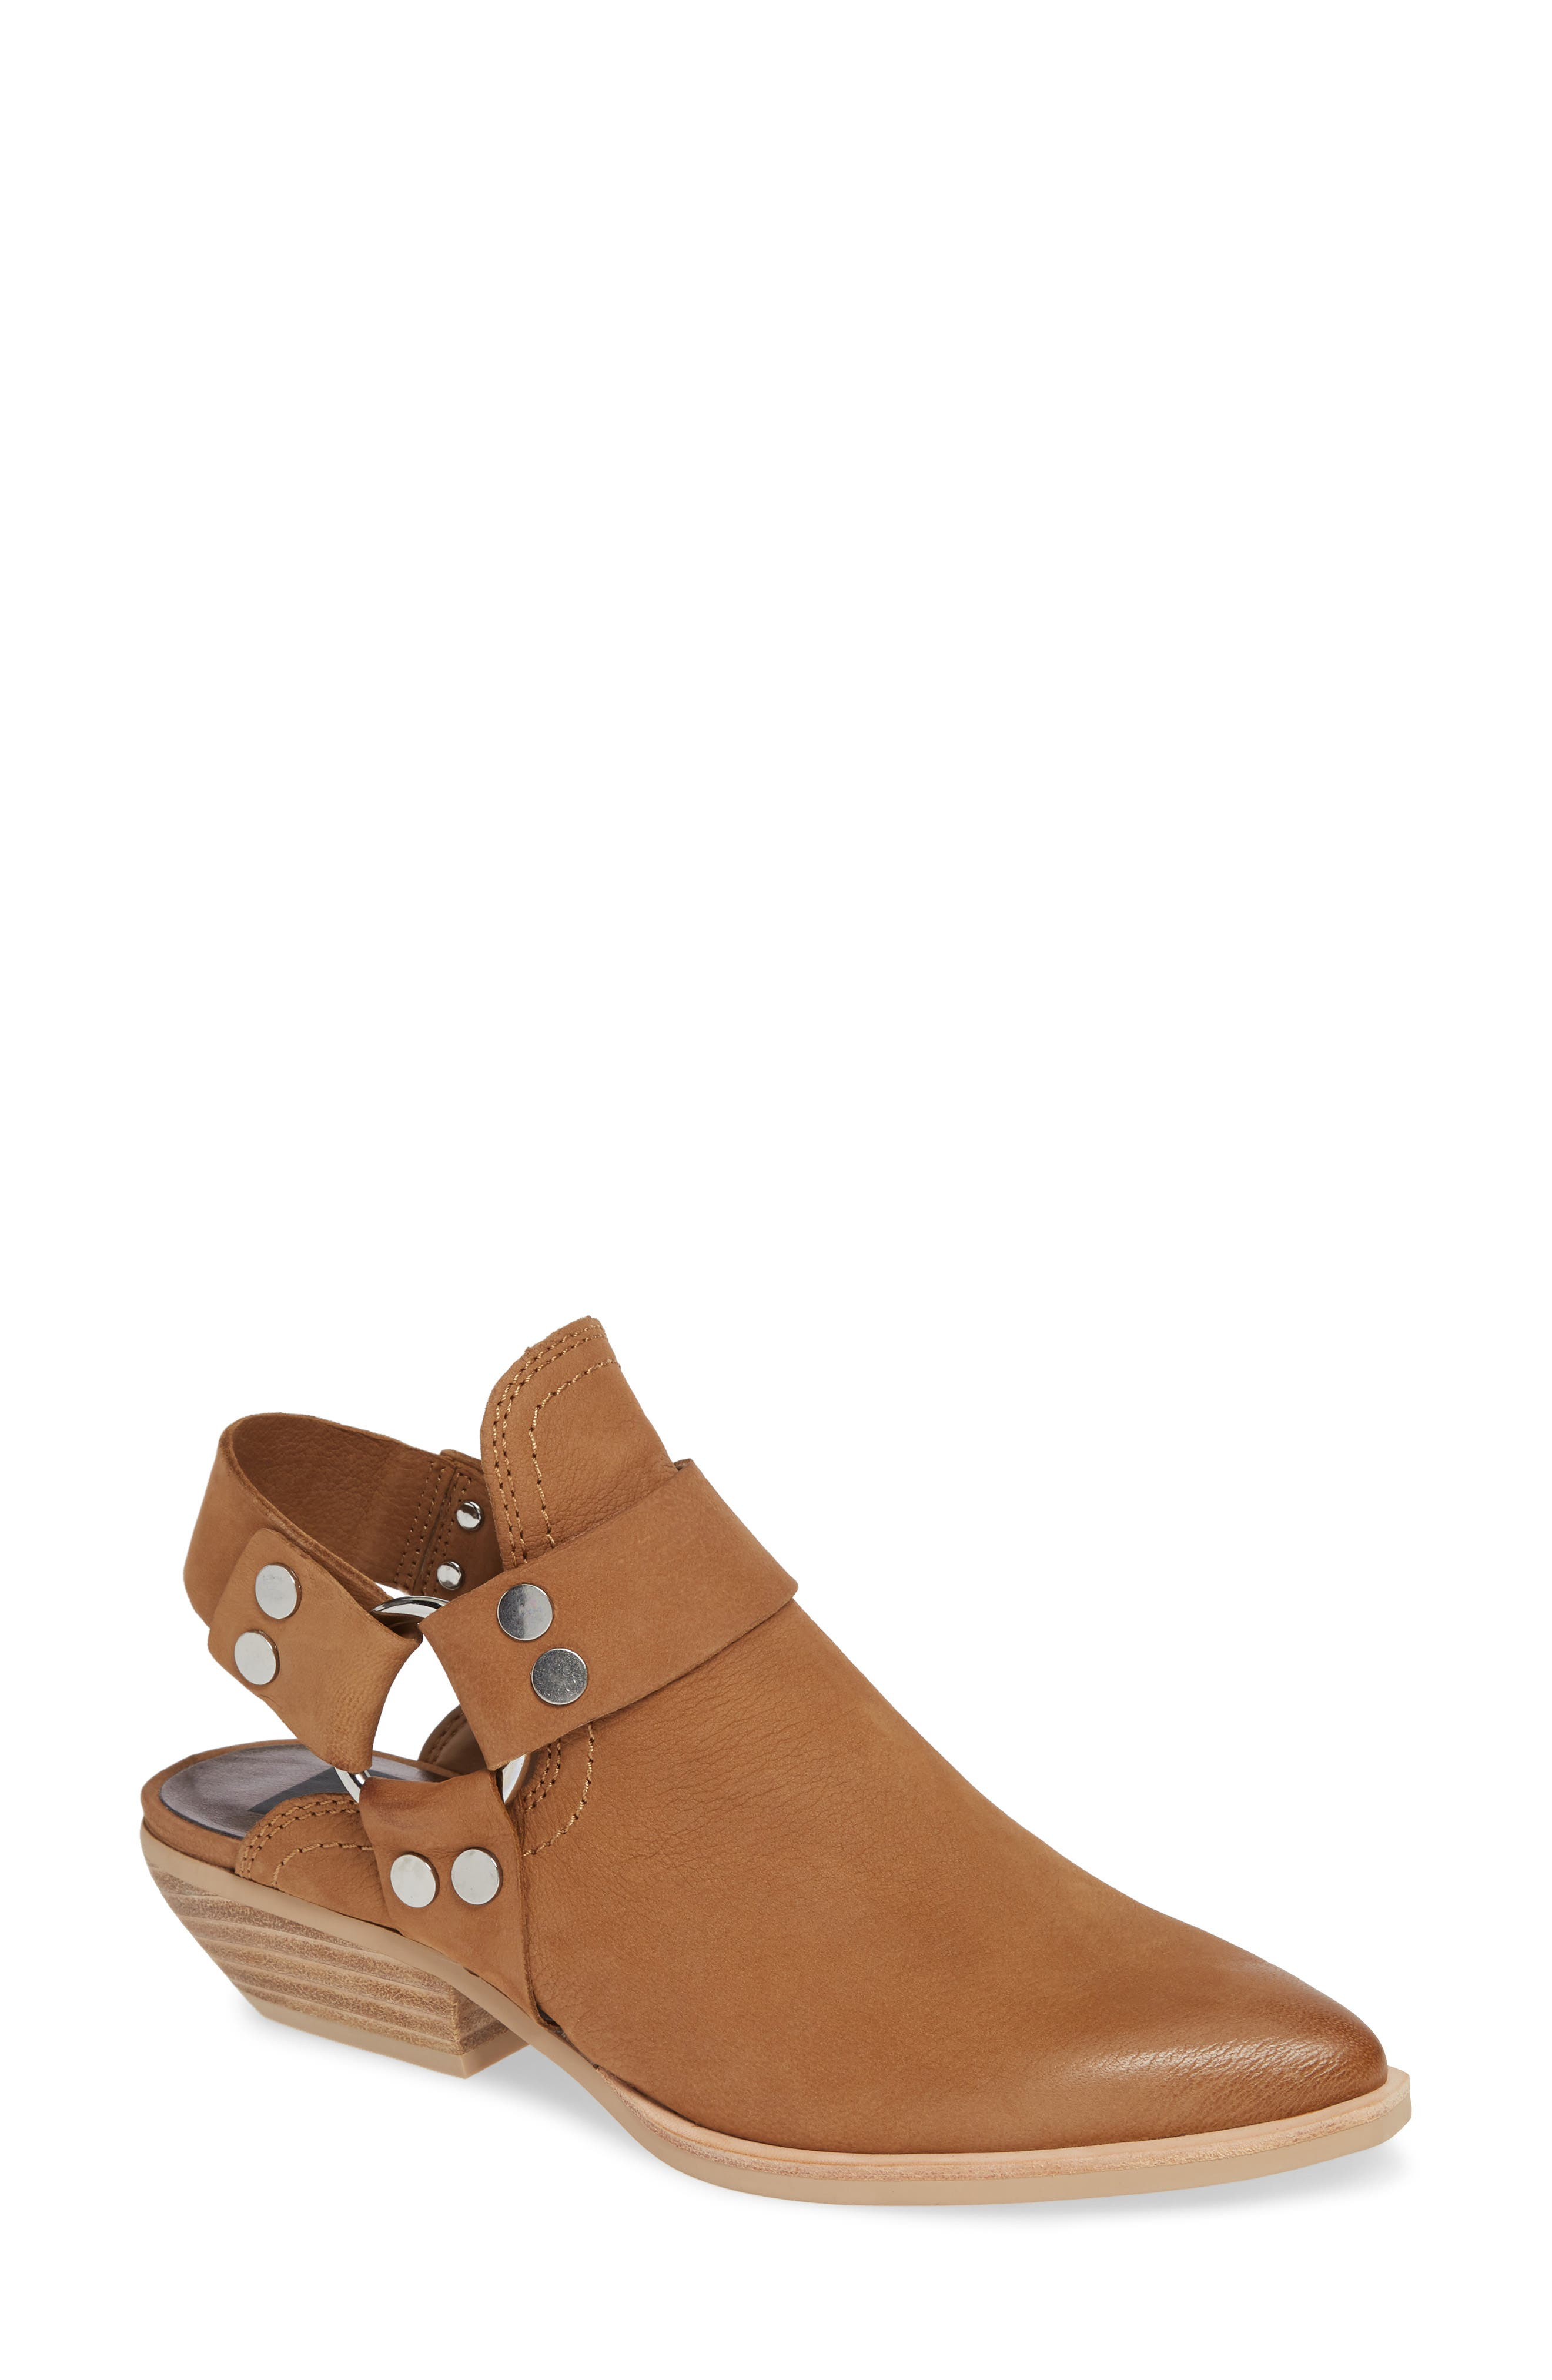 Urban Bootie,                             Main thumbnail 1, color,                             TAN NUBUCK LEATHER